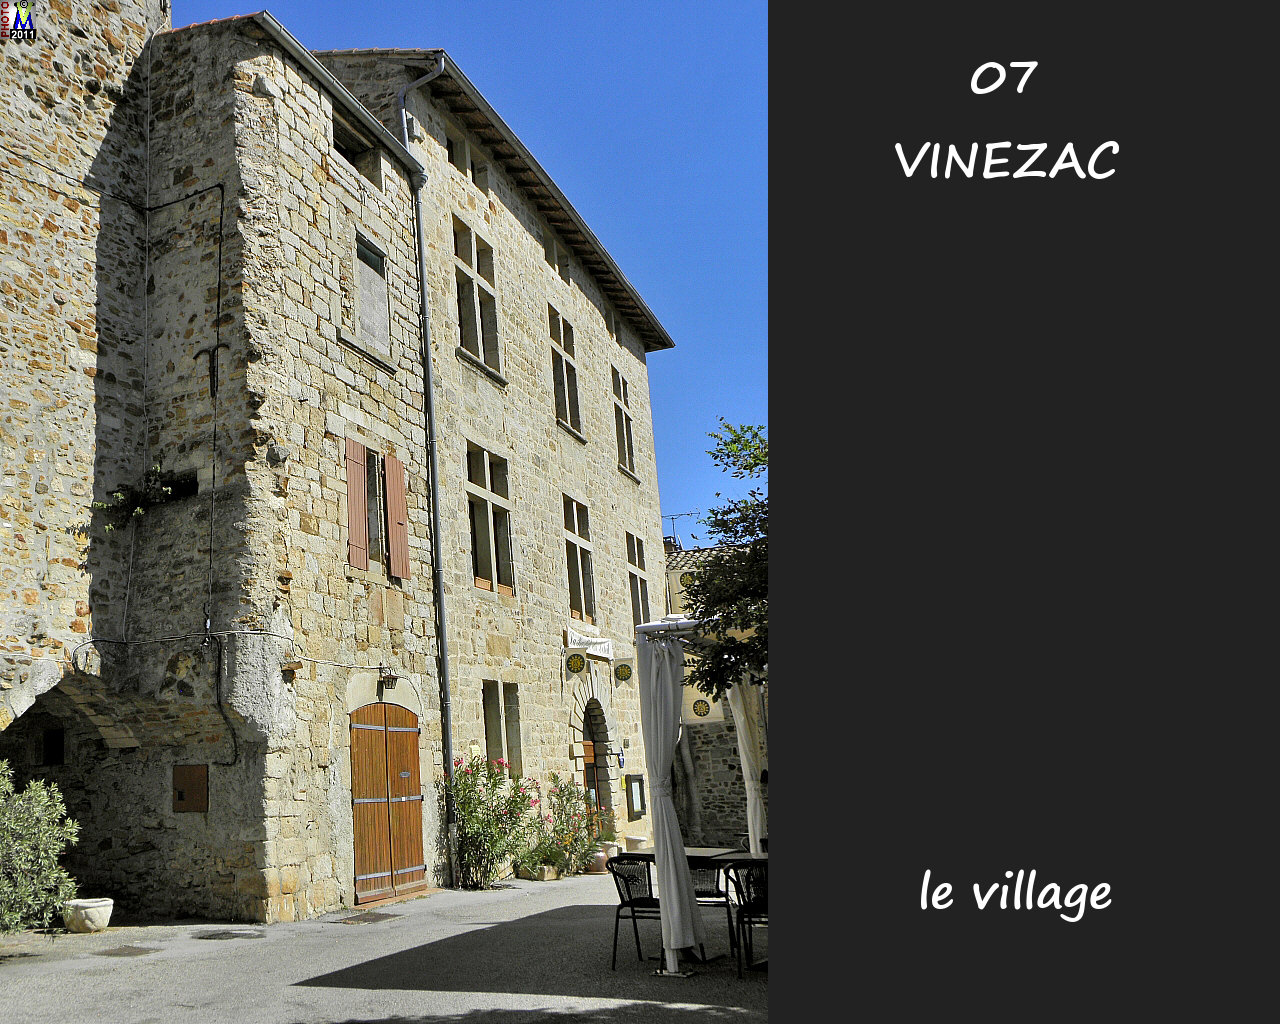 07VINEZAC_village_110.jpg